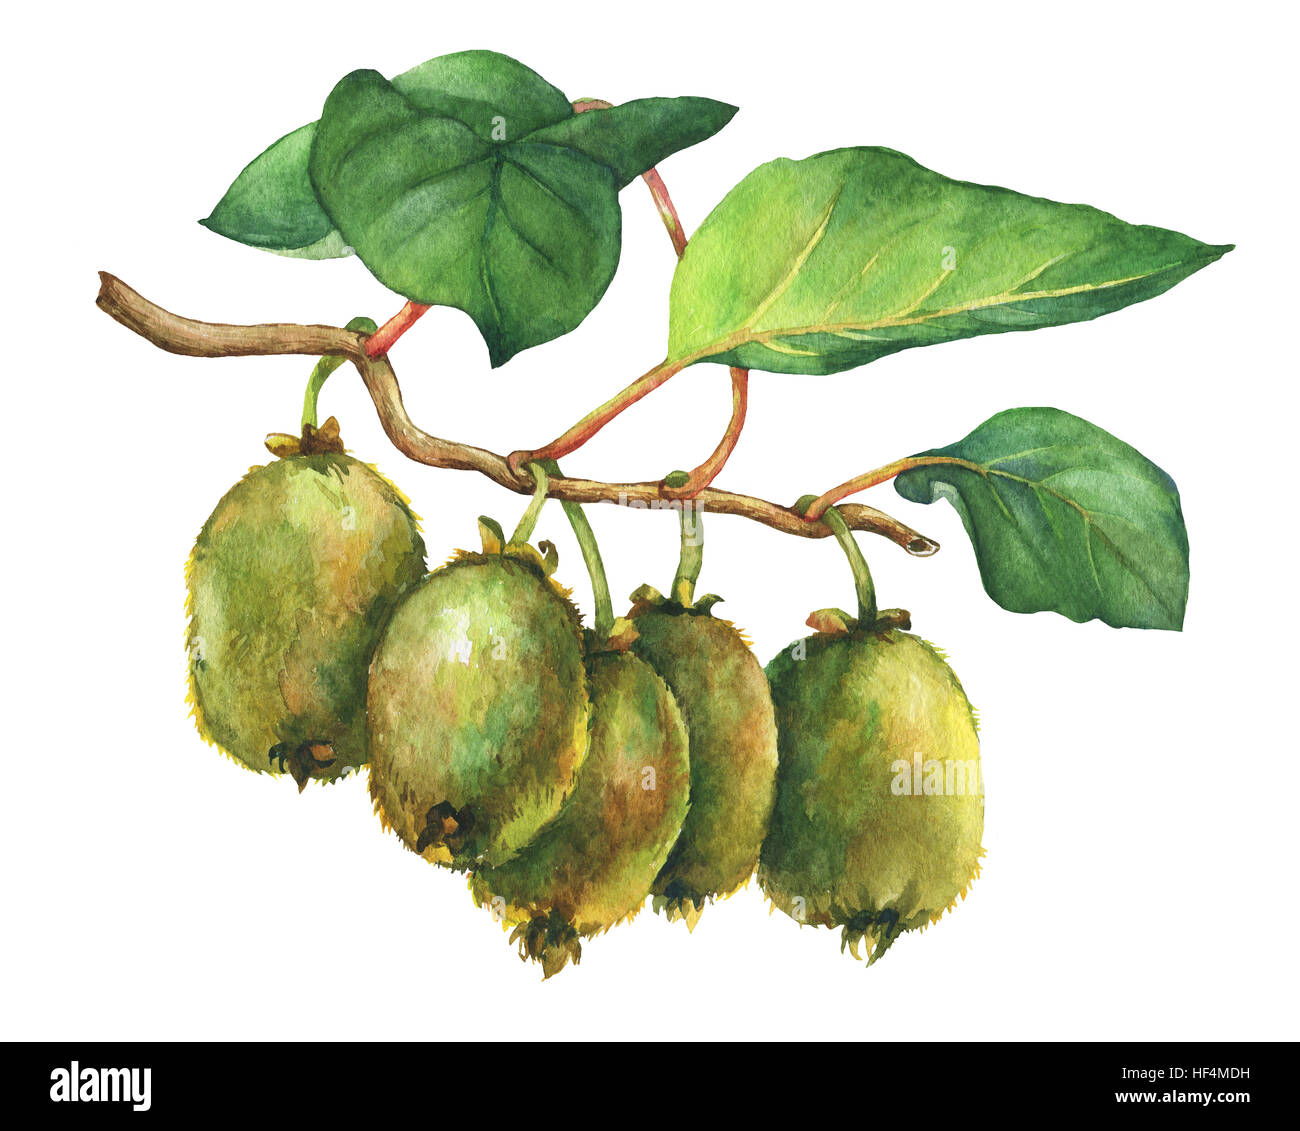 Illustration of kiwi plant (Actinidia chinensis) a branch with leaves and fruits. Hand drawn watercolor painting - Stock Image